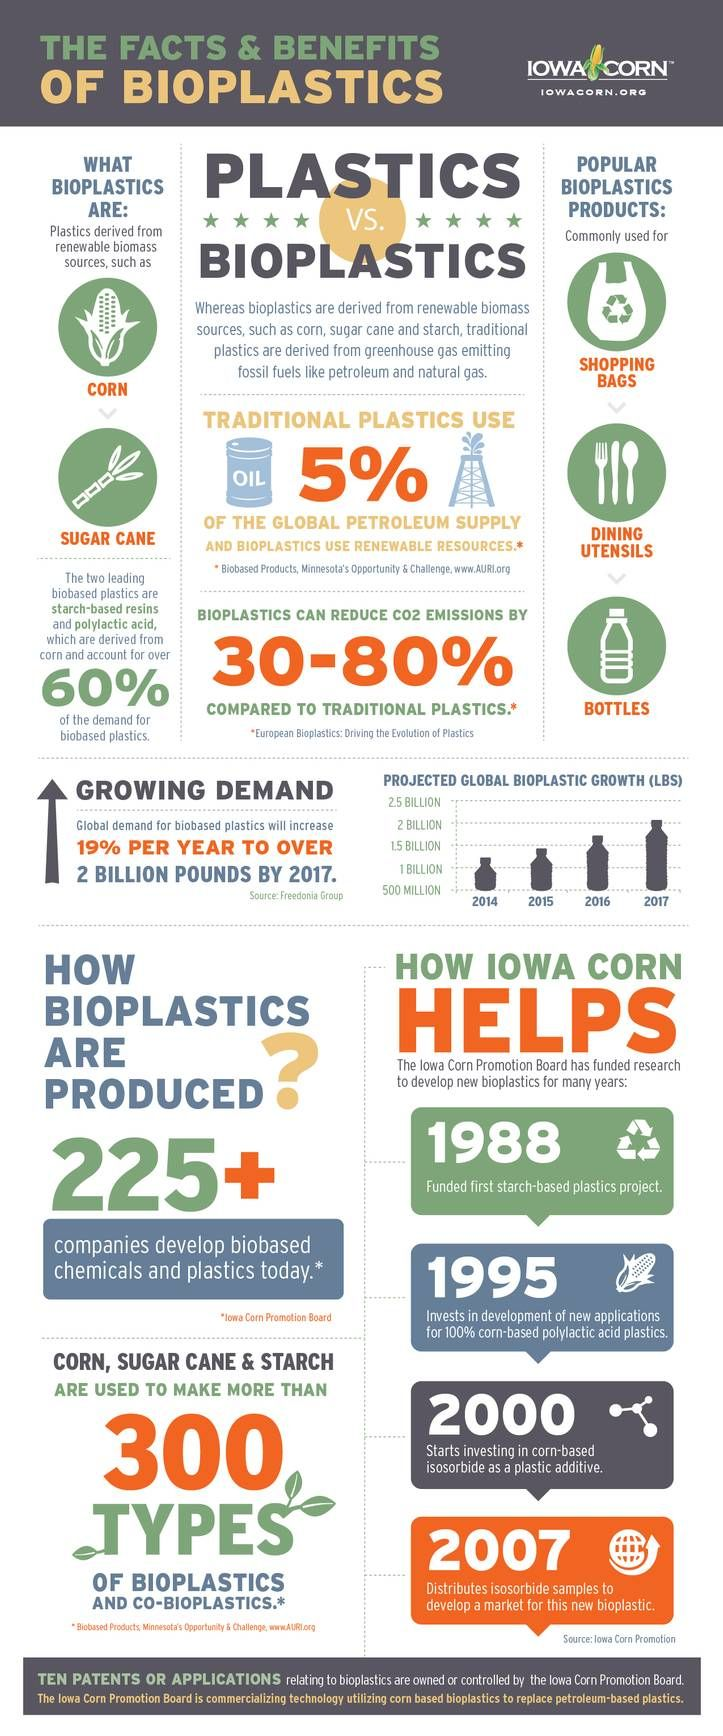 Bioplastics are derived from renewable biomass sources such as corn